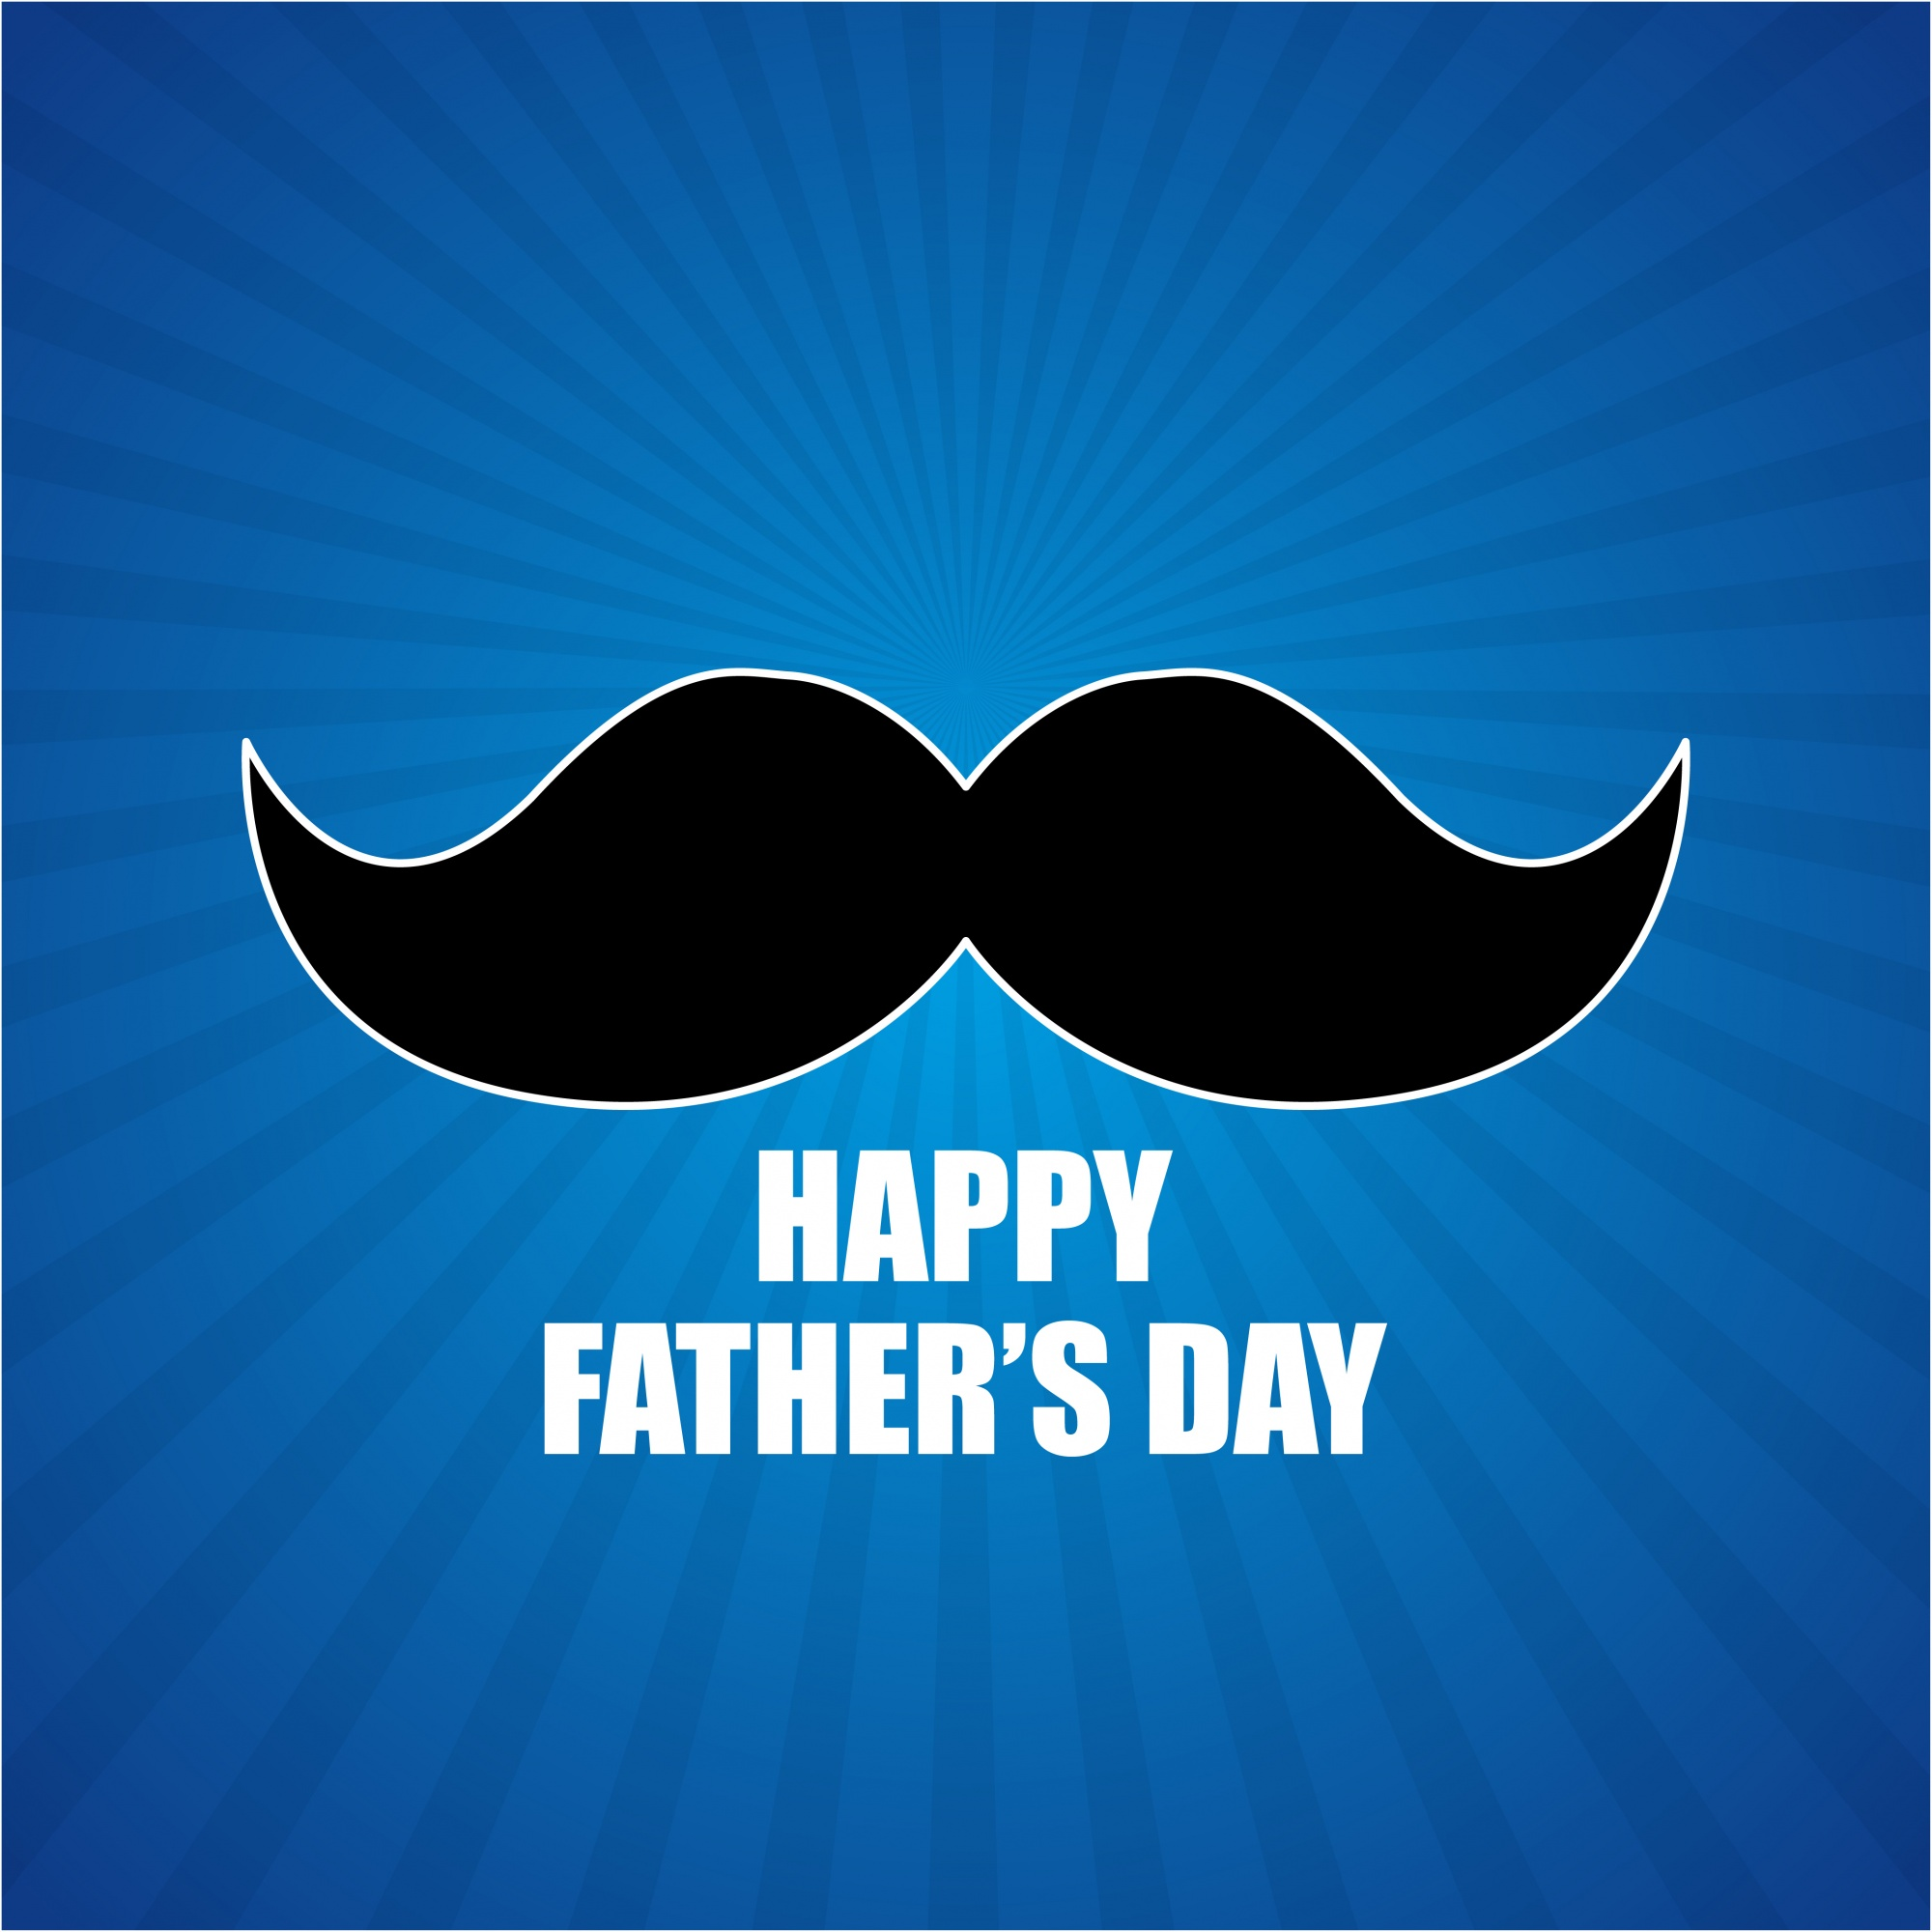 Hipster father's day design with mustache